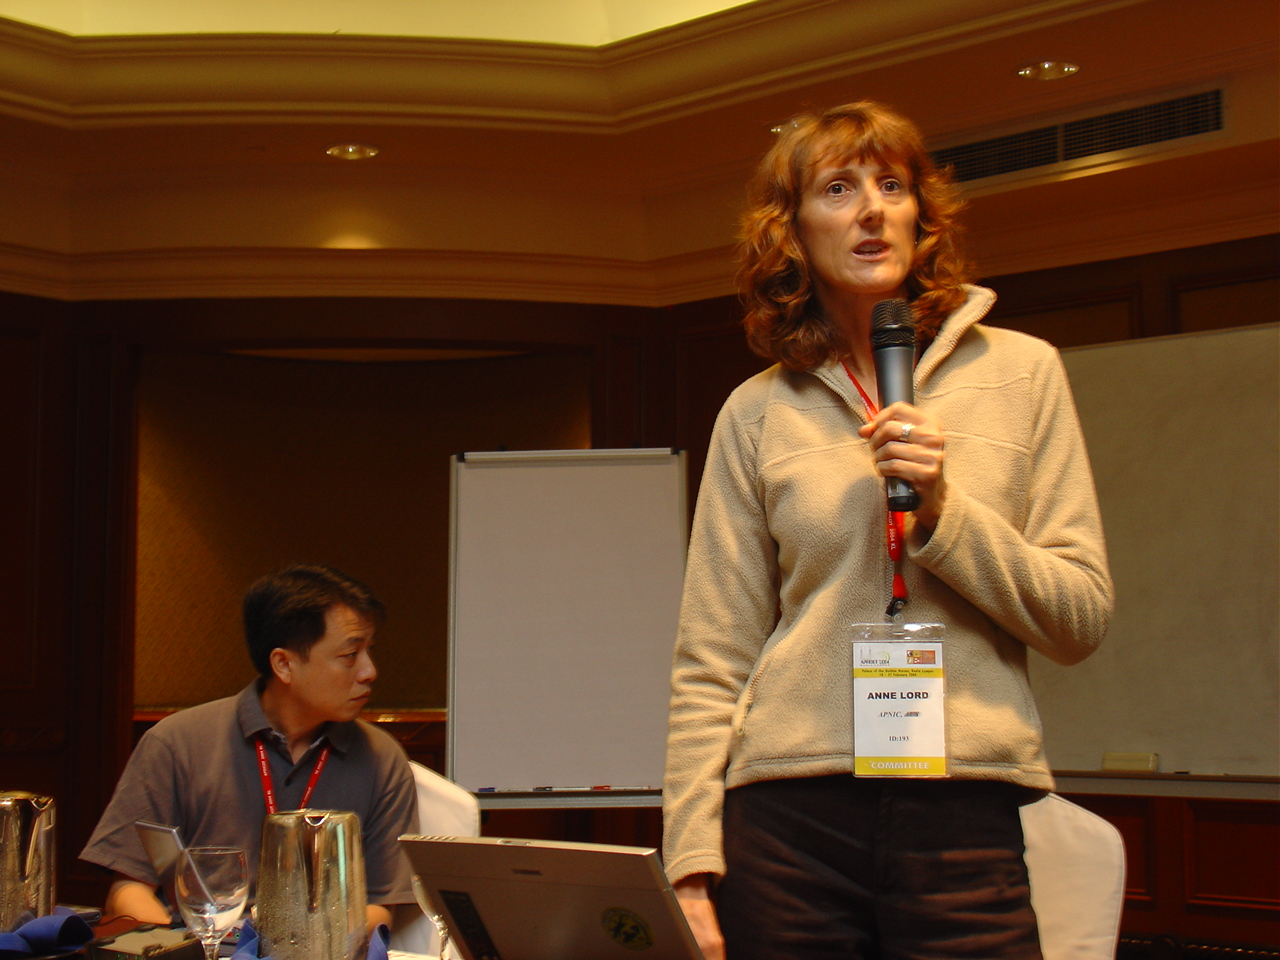 Anne Lord was one of the co-proposers of the APNIC Policy Development Process.